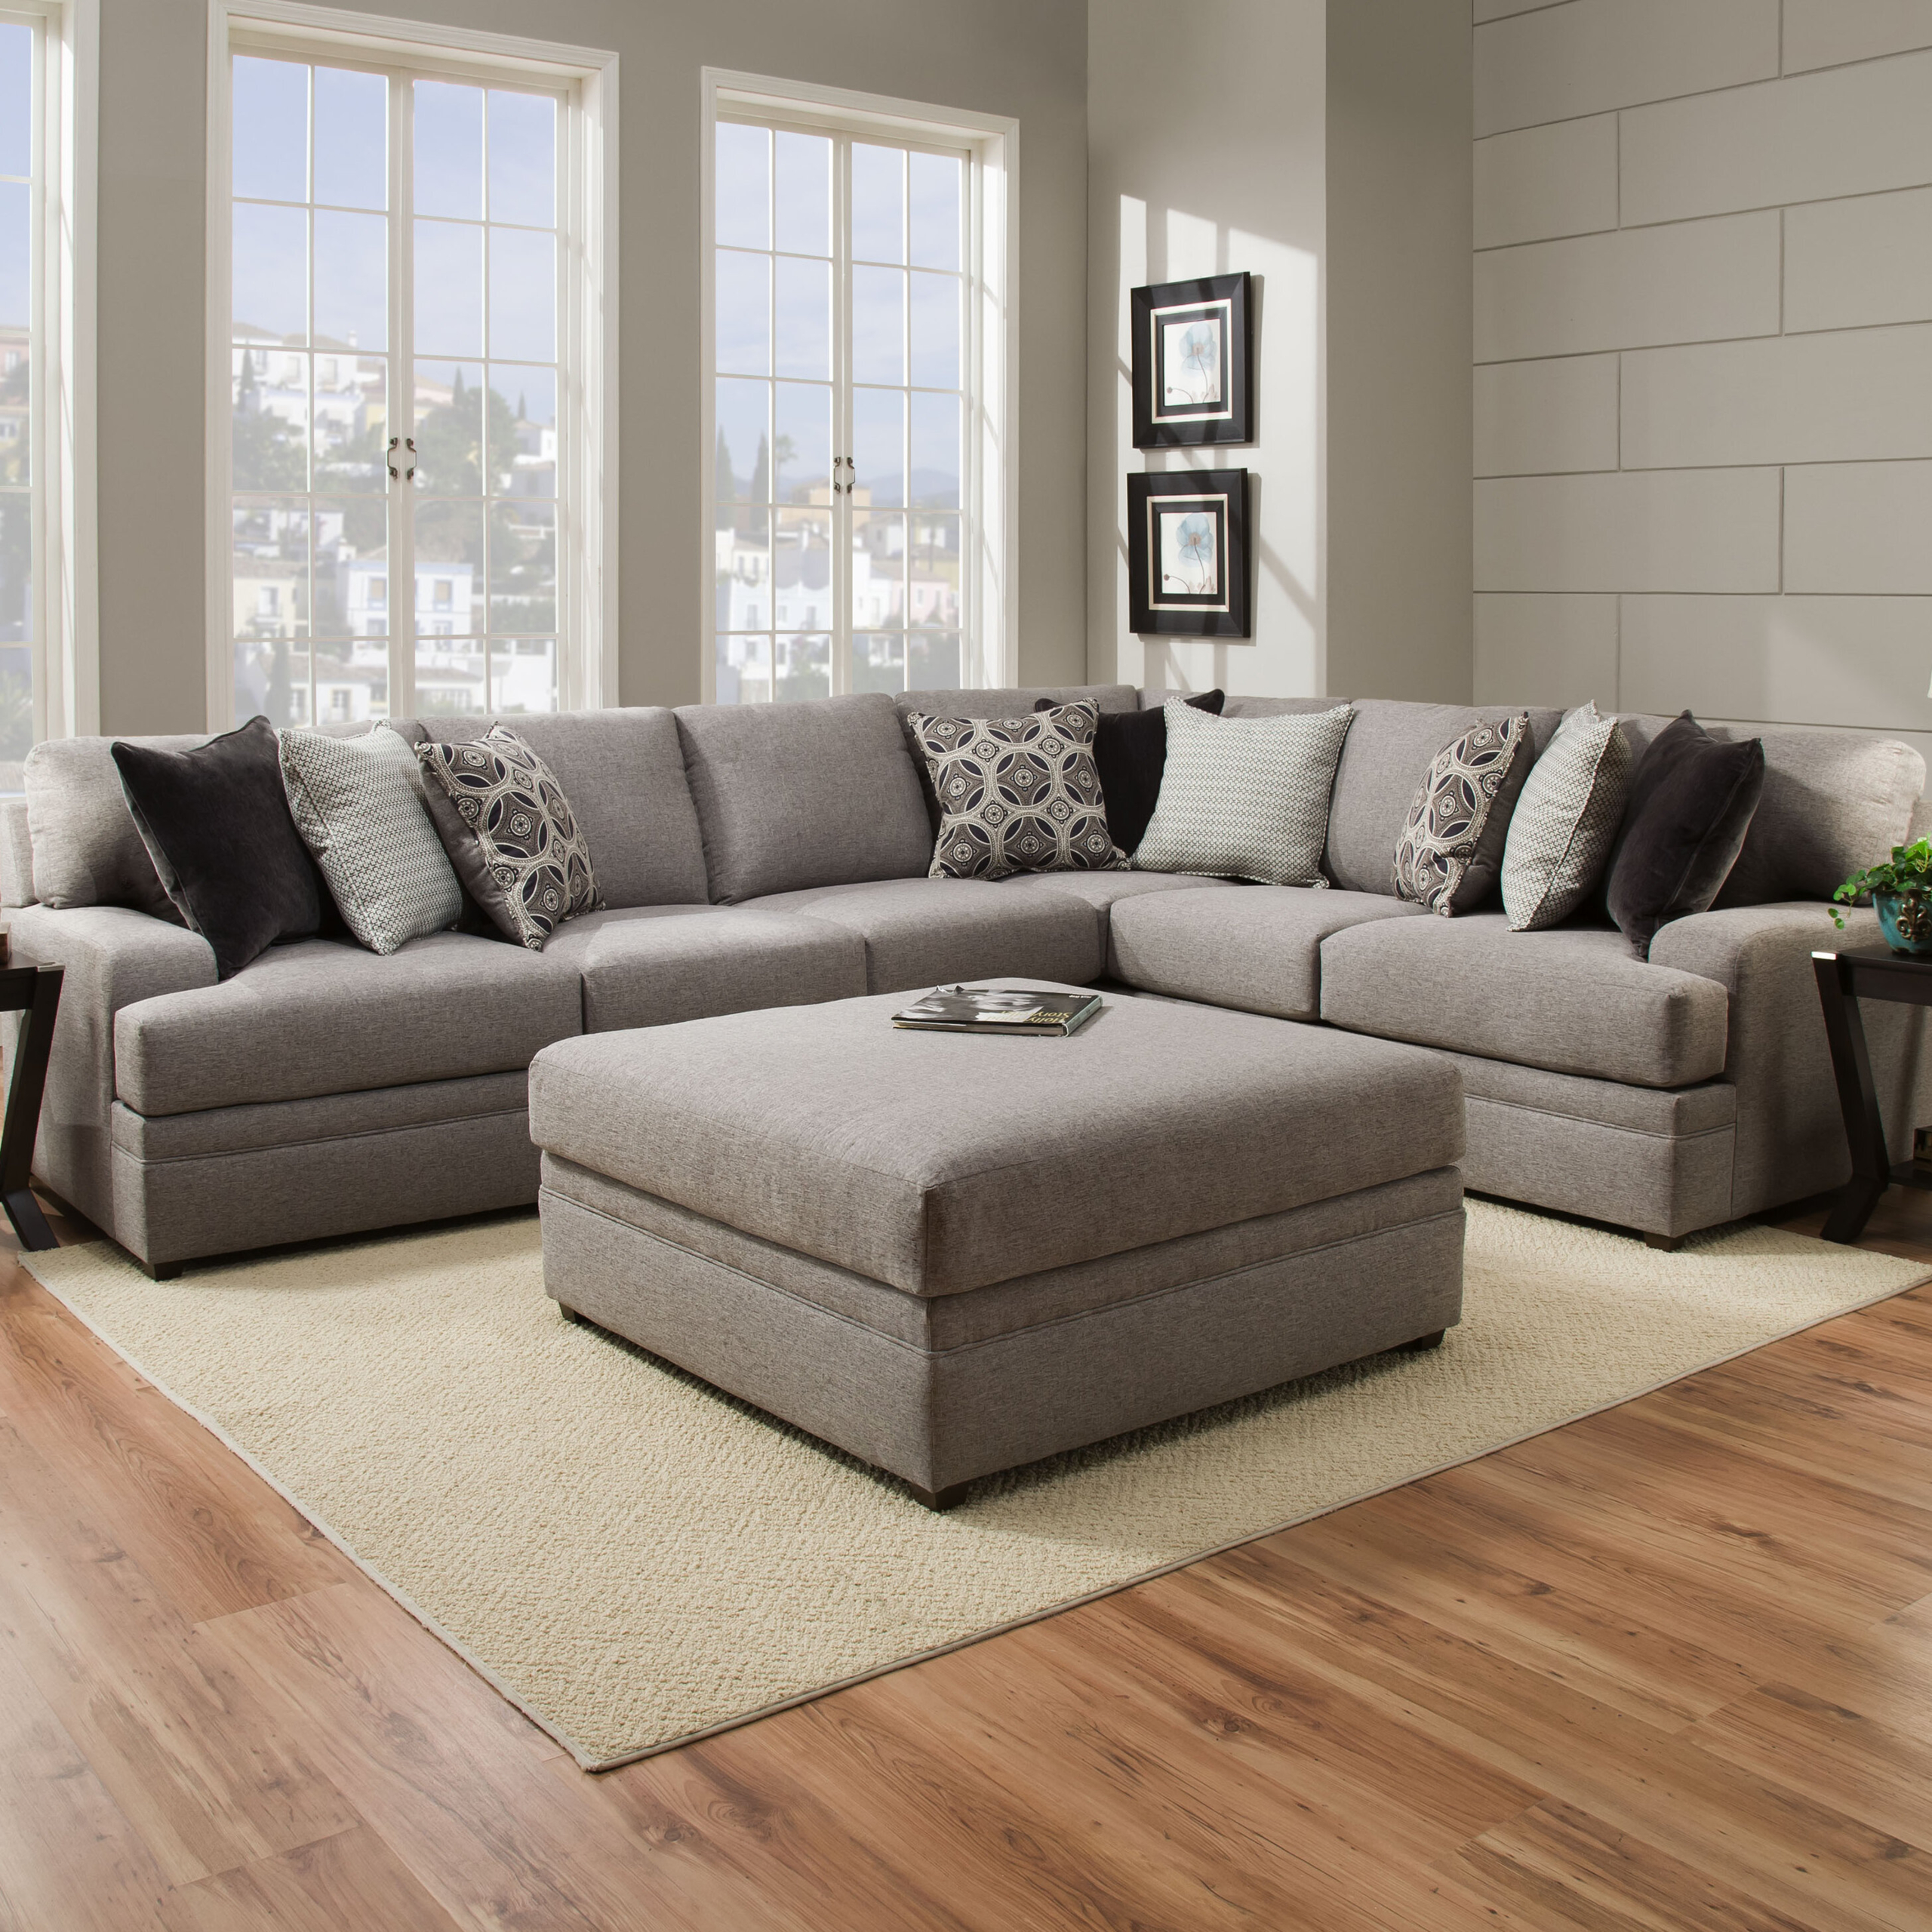 50+ Extra Large Sectional Sofa You'll Love in 2020 ...